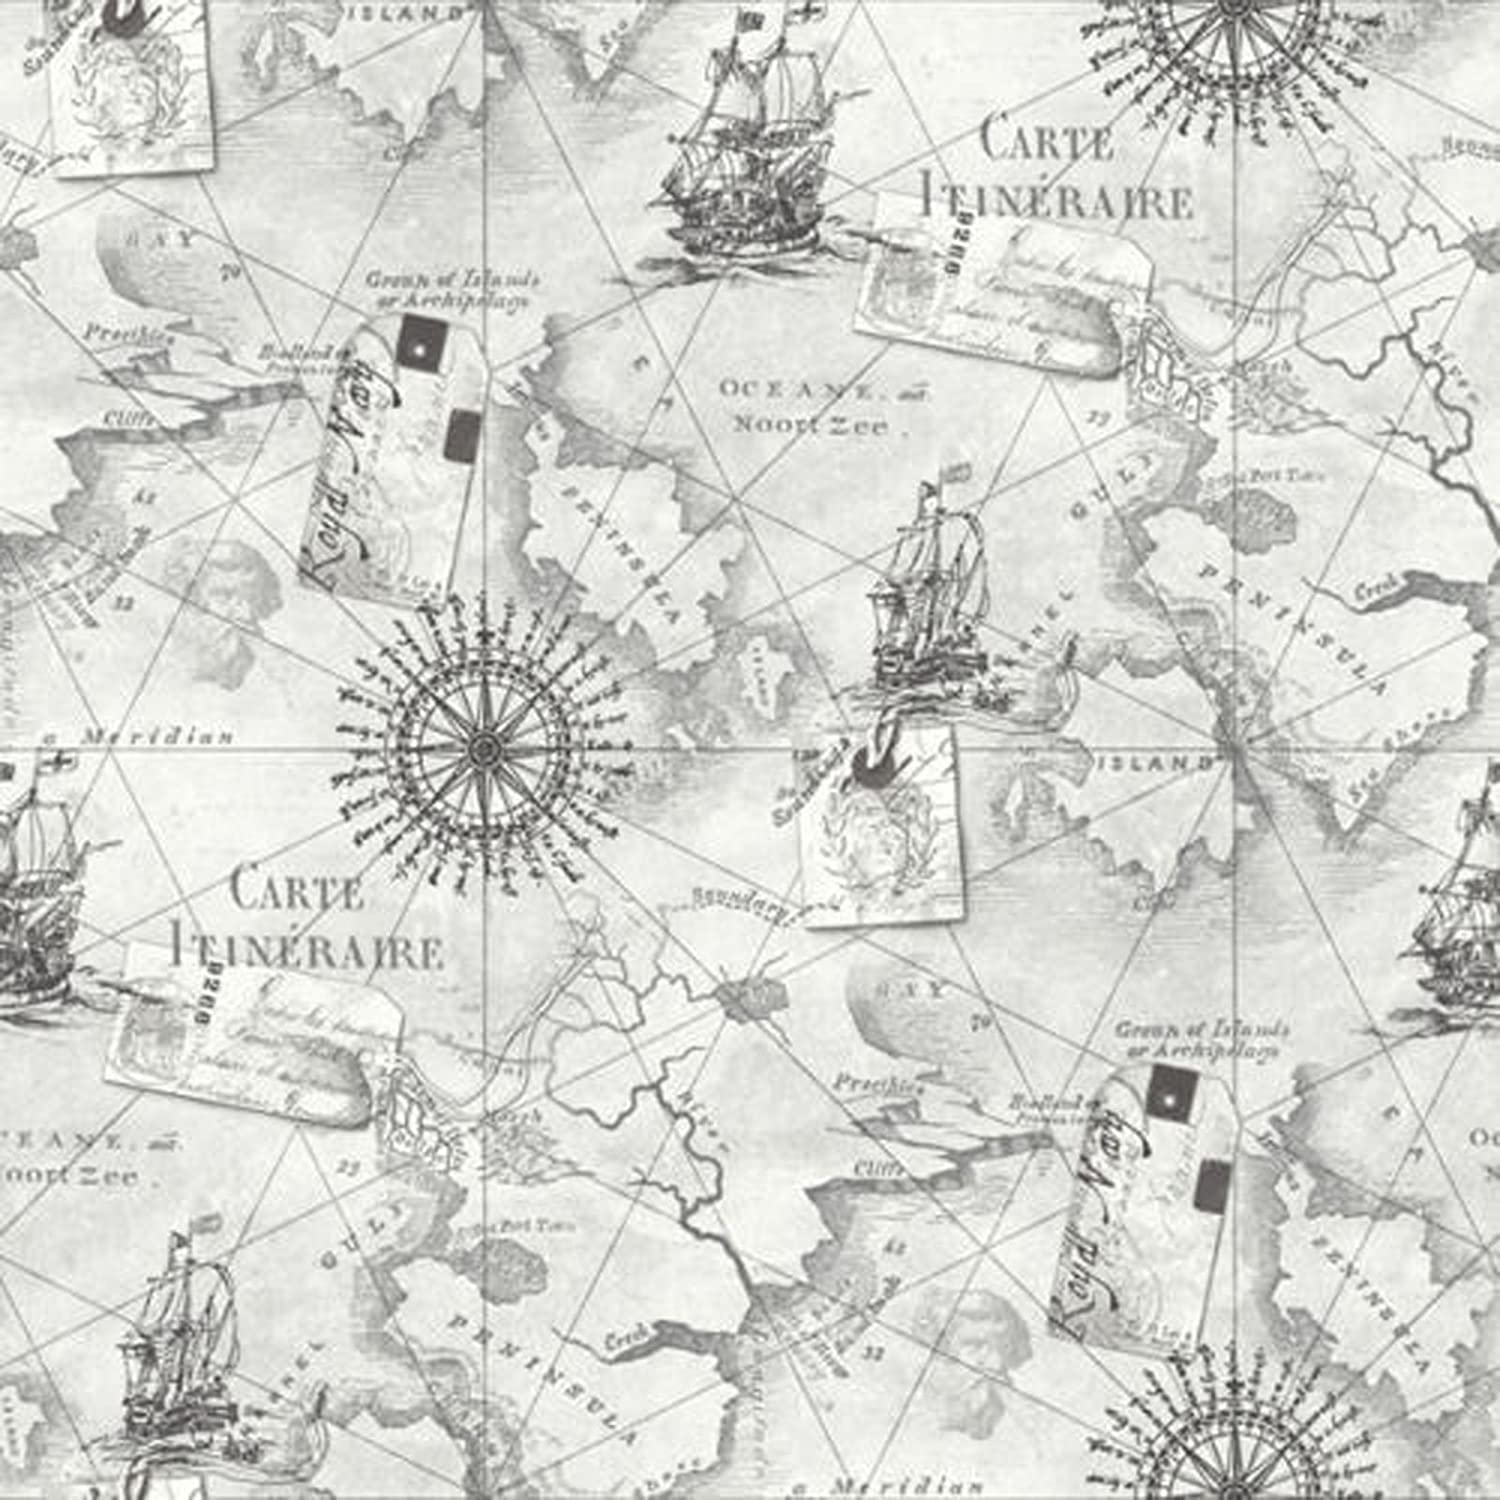 Nautical Map Wallpaper NEW ARTHOUSE NAVIGATOR VIP CARTOGRAPHY LUXURY VINTAGE NAUTICAL MAP